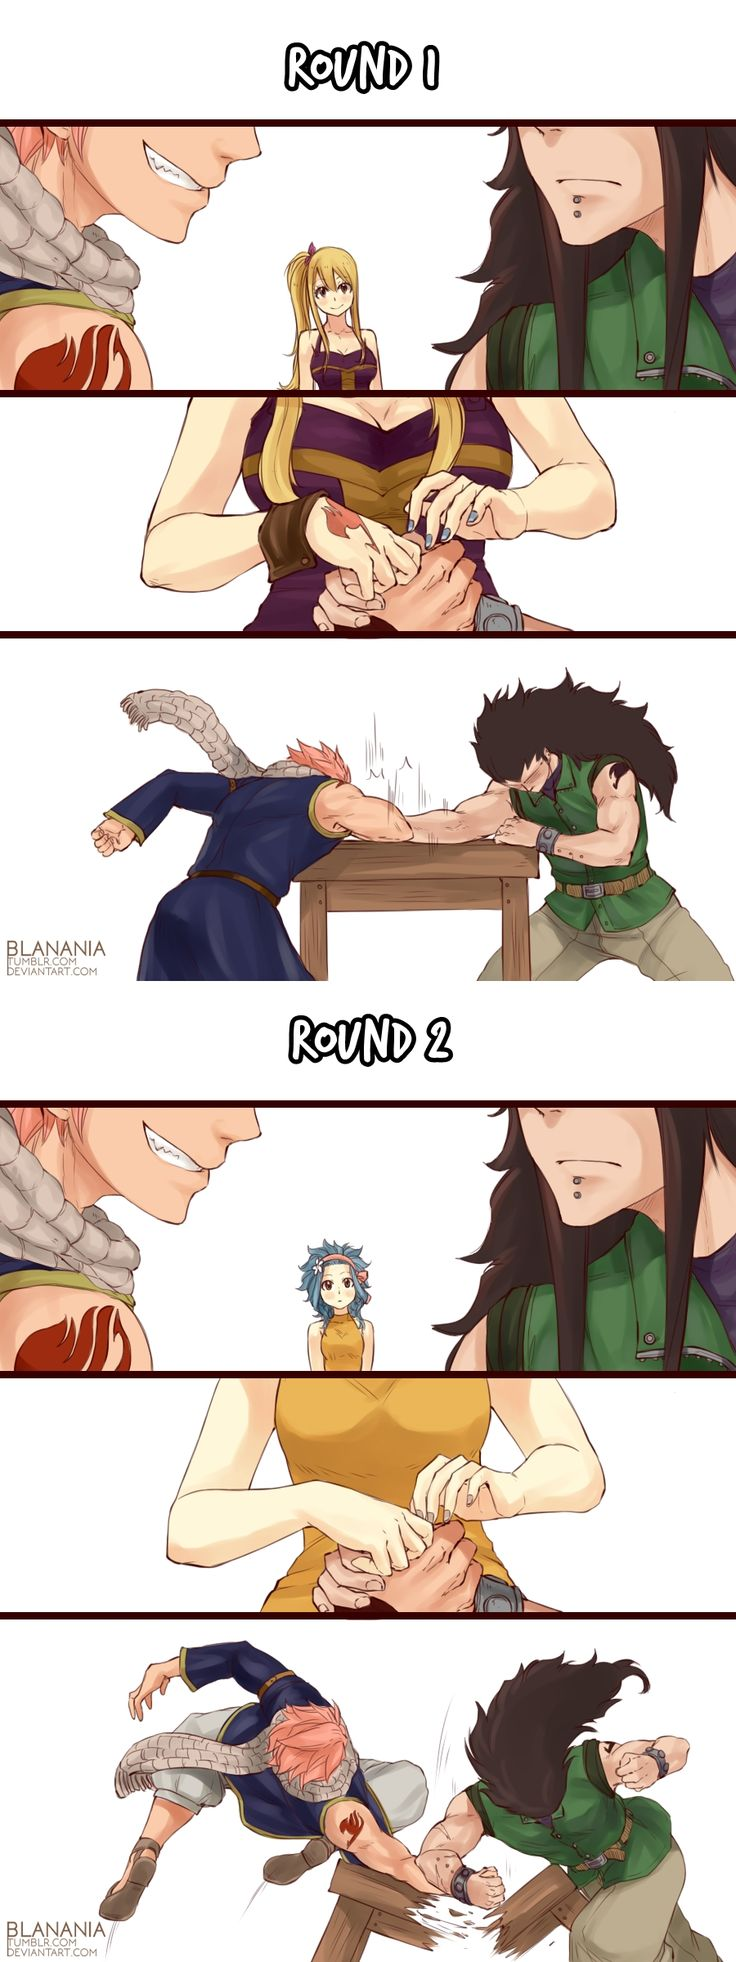 Arm Wrestling by blanania on DeviantArt